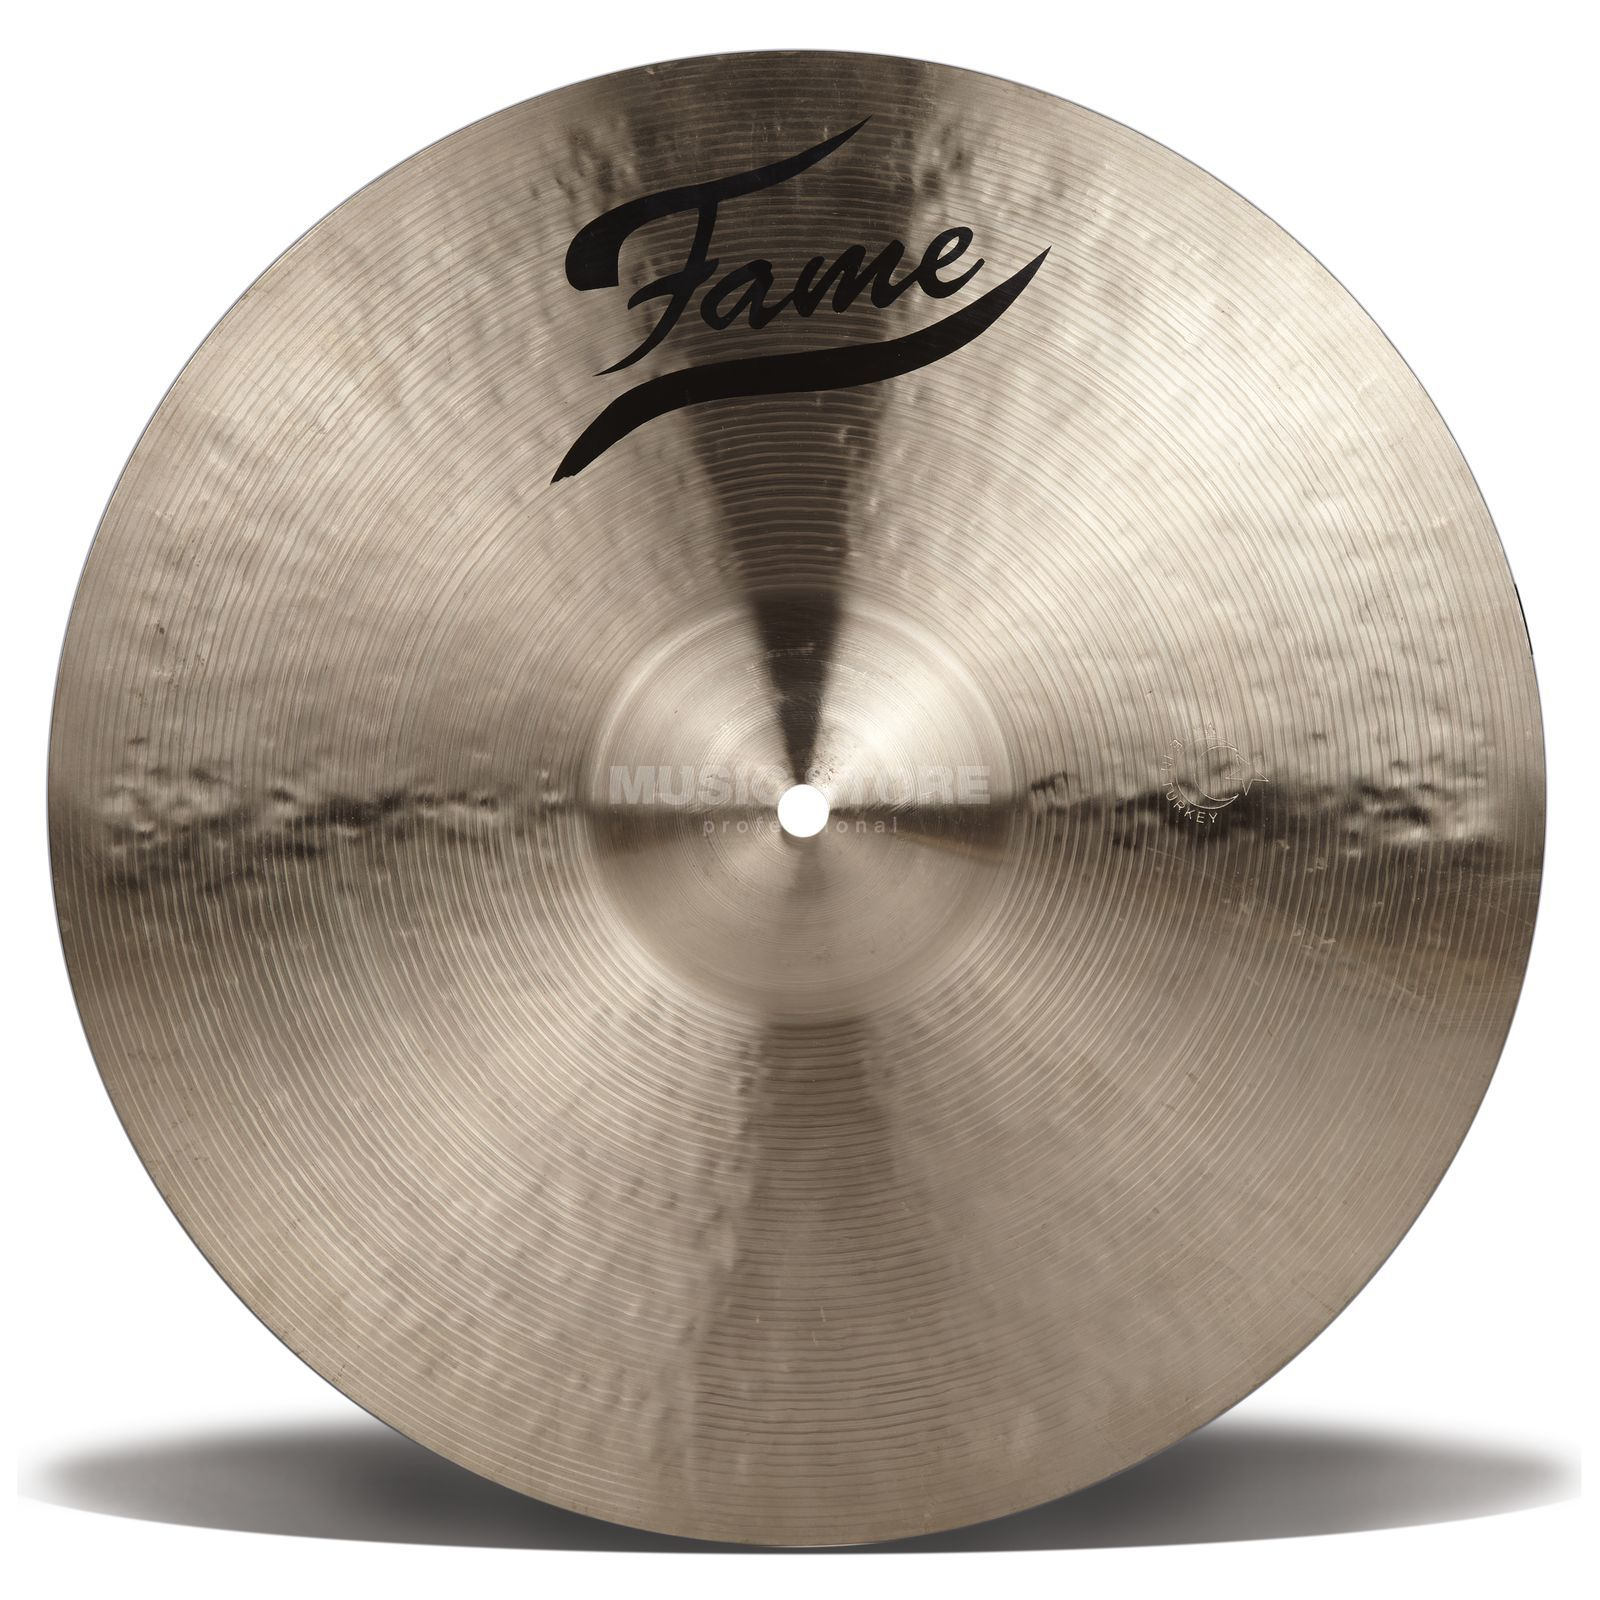 "Fame Masters B20 Thin Crash 16"", Natural Finish Изображение товара"